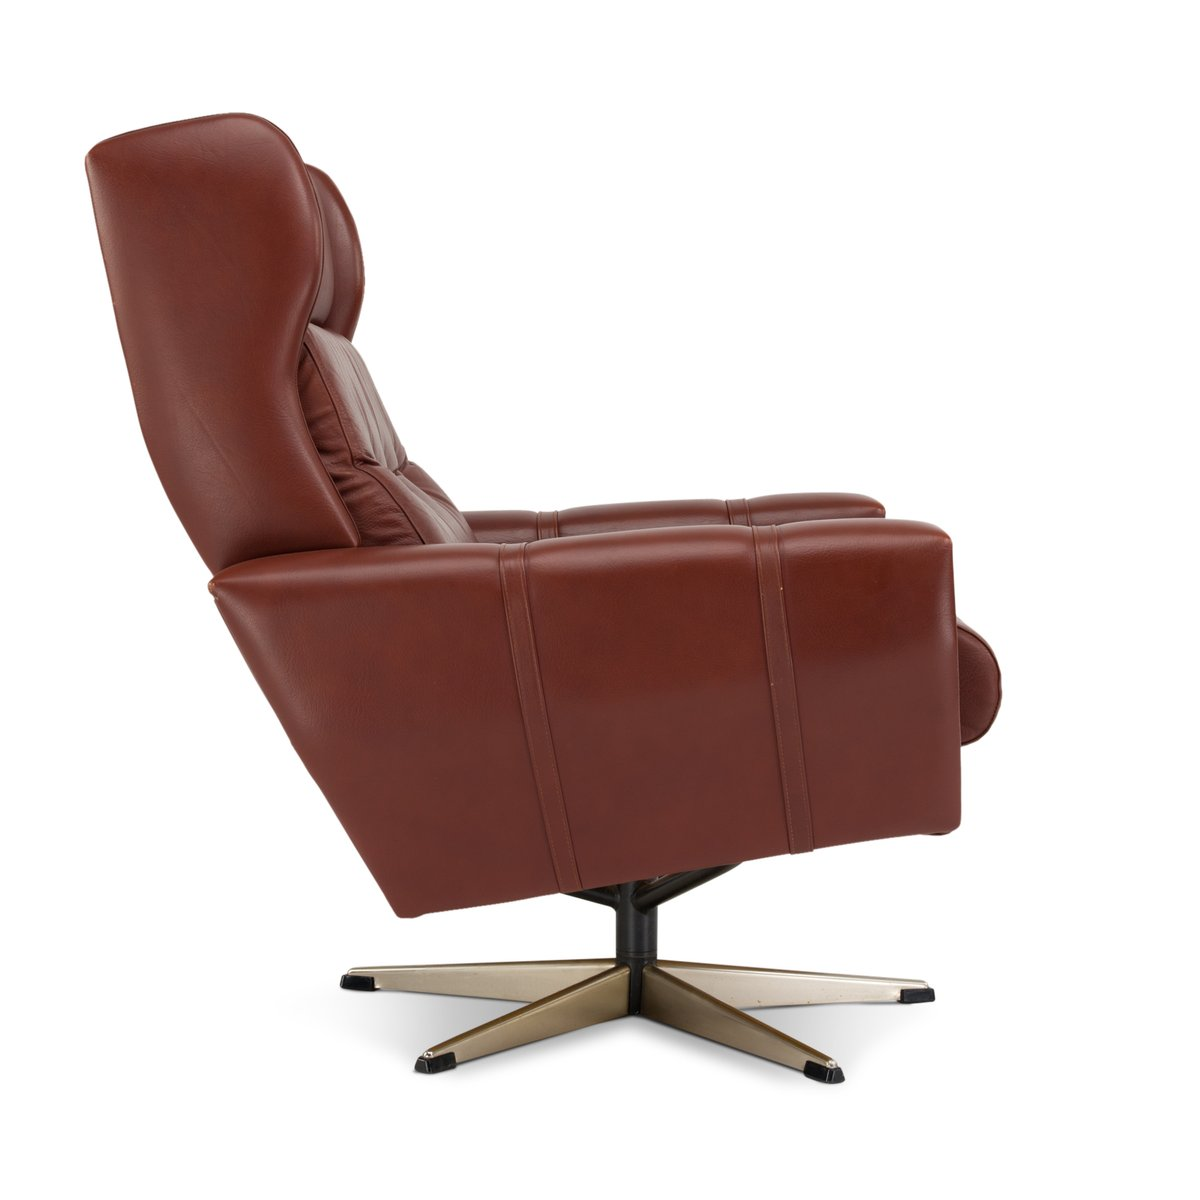 brown swivel chair office lounge and ottoman mid century danish in leather from lystager for price per piece